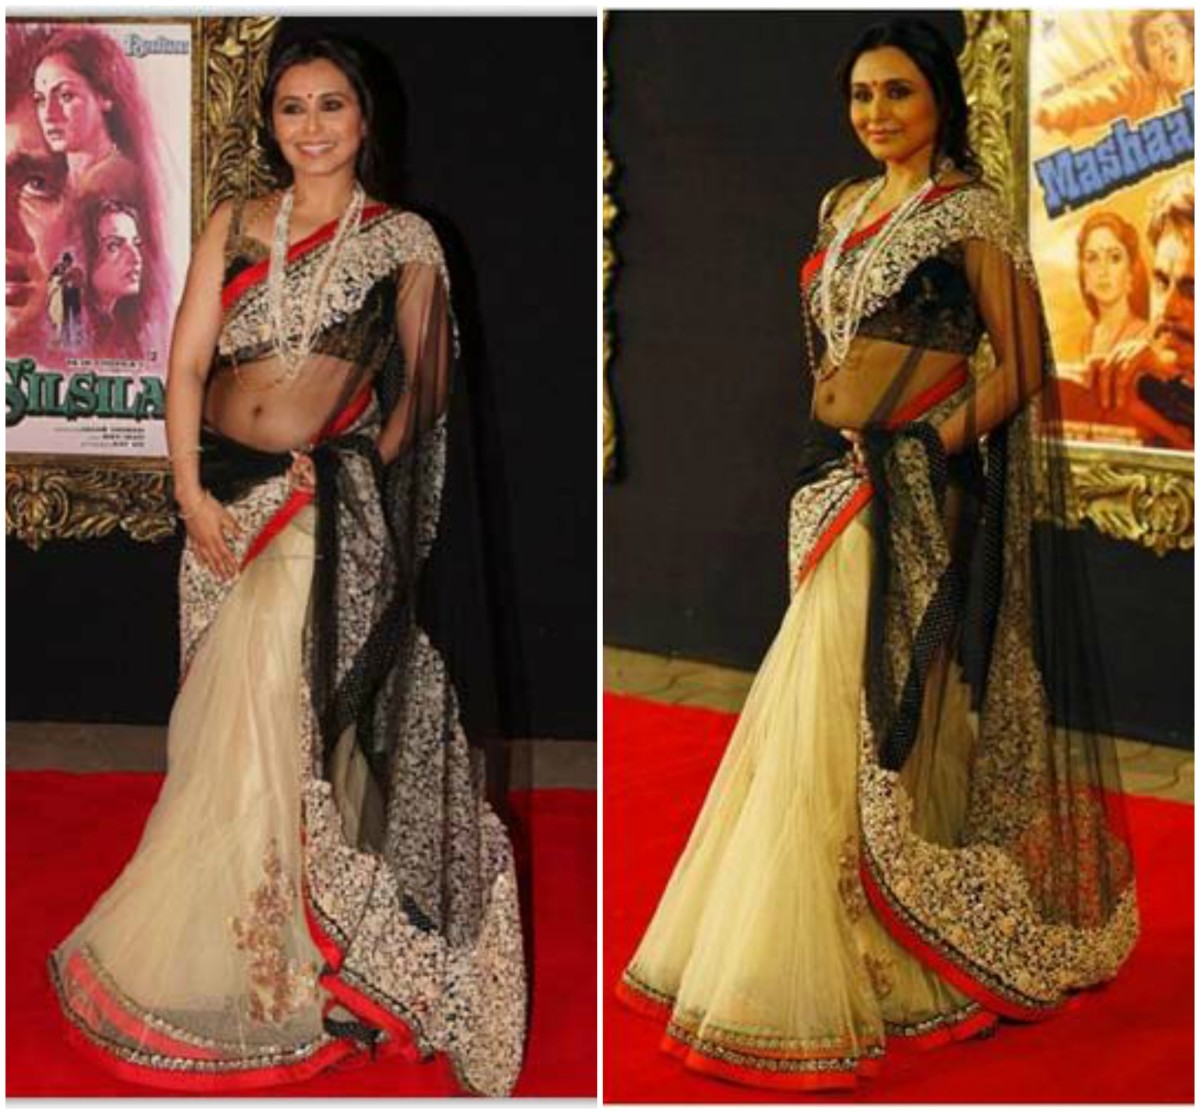 Rani's embellished outfit